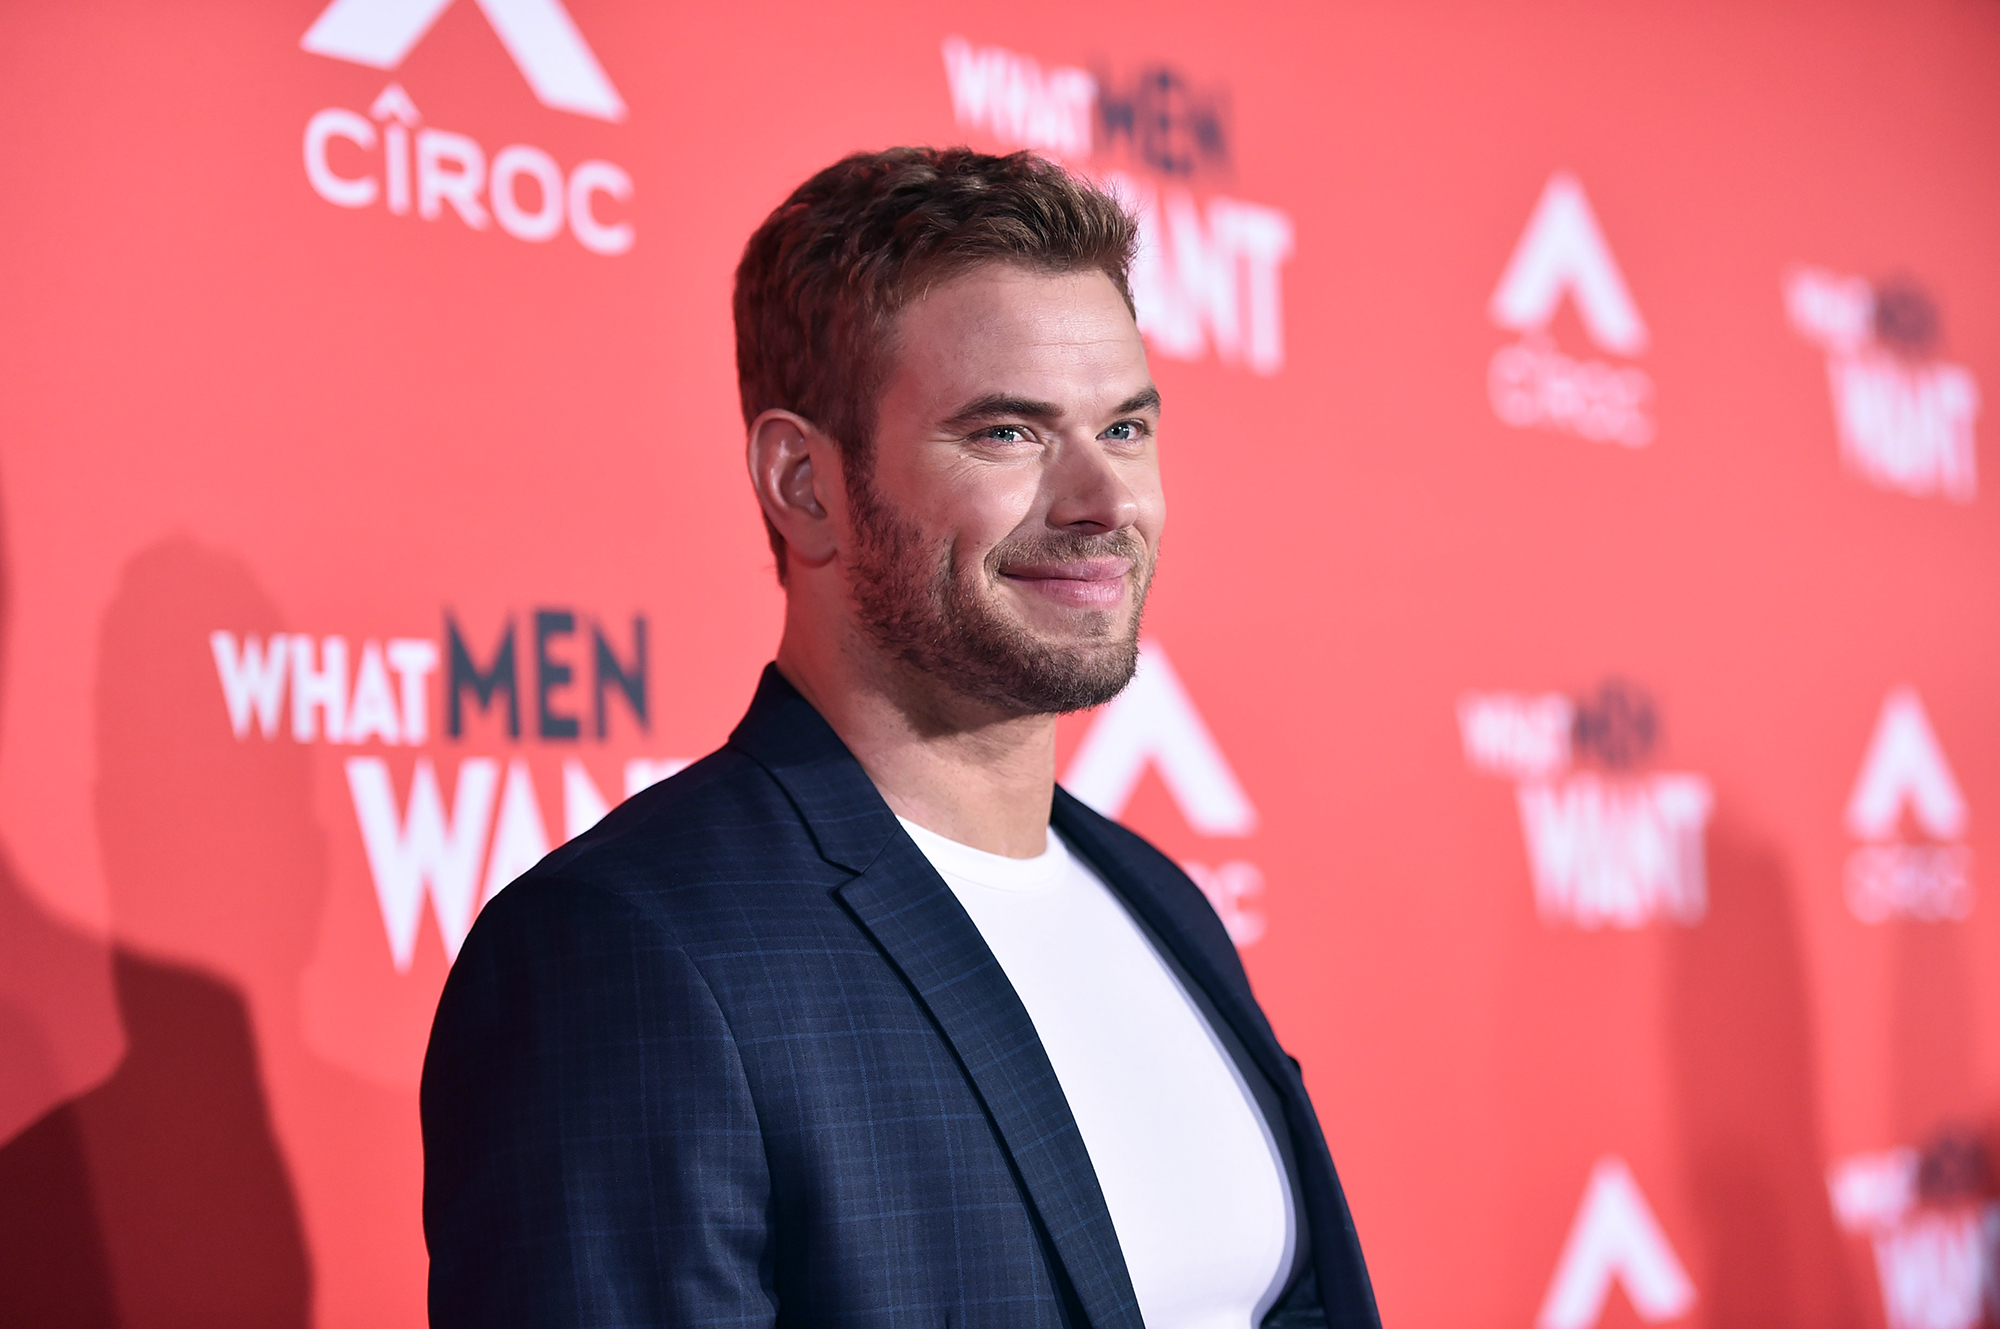 Kellen Lutz Is 'So Happy' for Ex Miley Cyrus' and Her Husband Liam Hemsworth: 'I'm a Big Advocate of Marriage' - Kellan Lutz attends the premiere of Paramount Pictures and BET Films' 'What Men Want' at Regency Village Theatre on January 28, 2019 in Westwood, California.